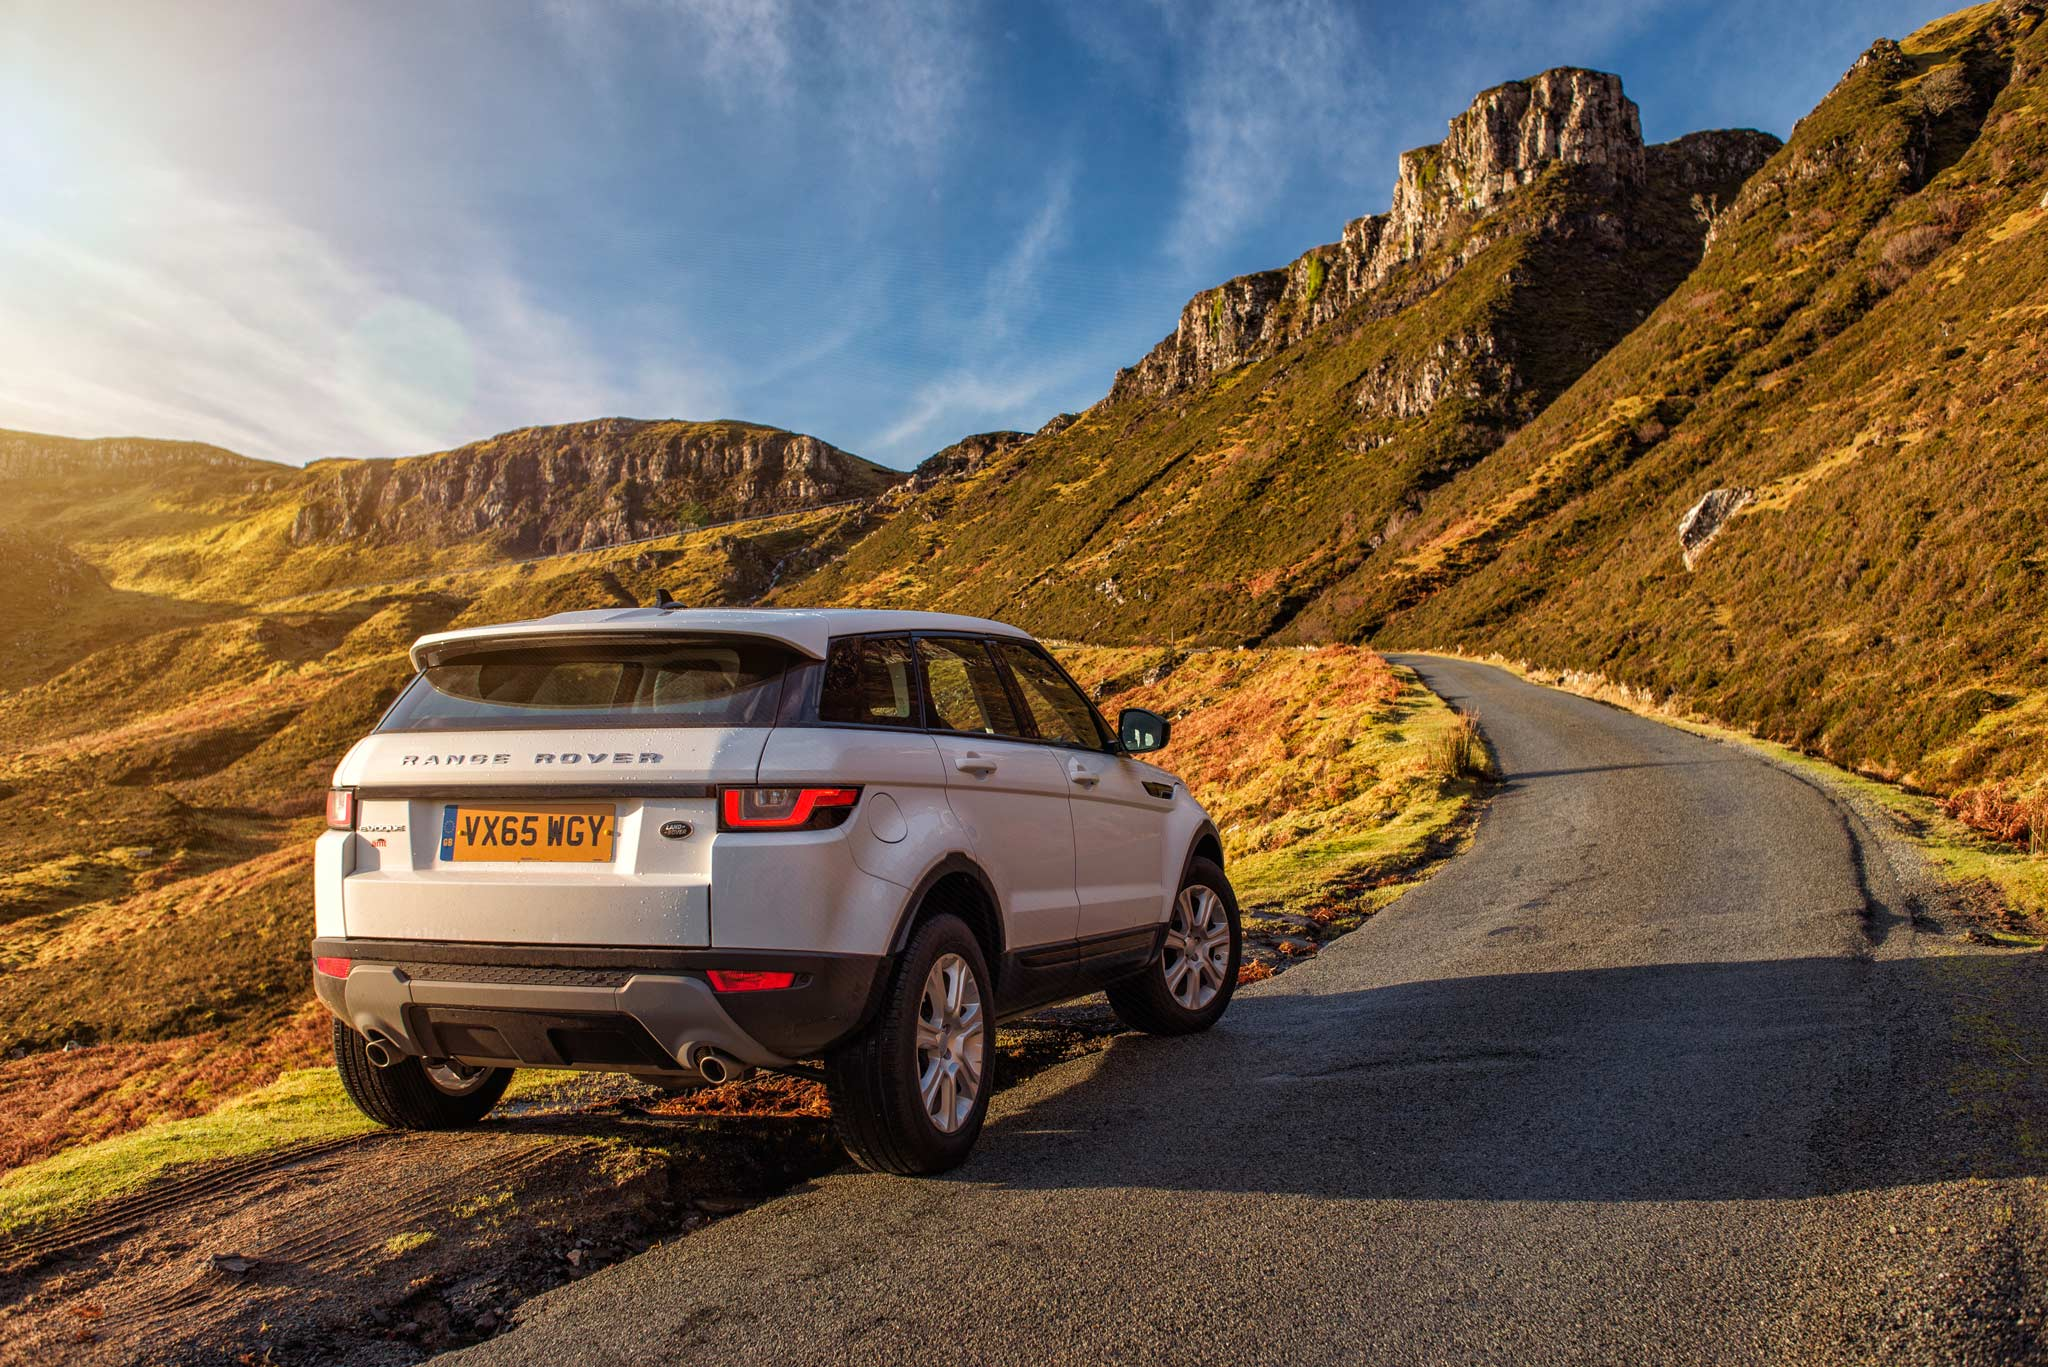 Land Rover Evoque - Quiraing, Skye. Image © Dean Wright Photography